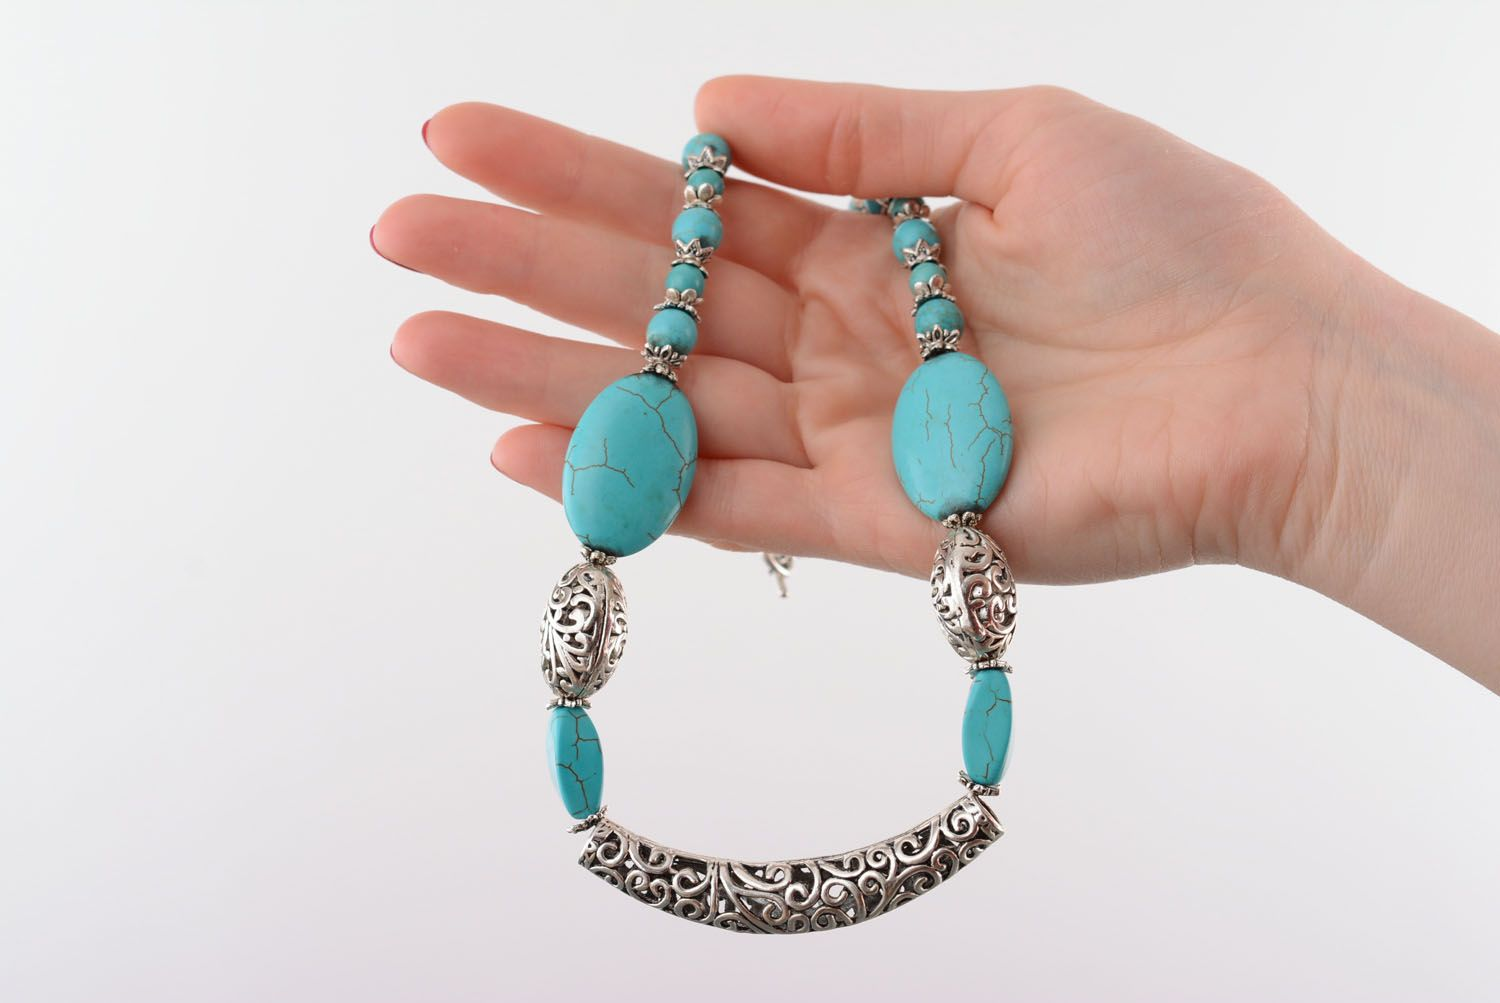 Necklace and earrings made of turquoise photo 4